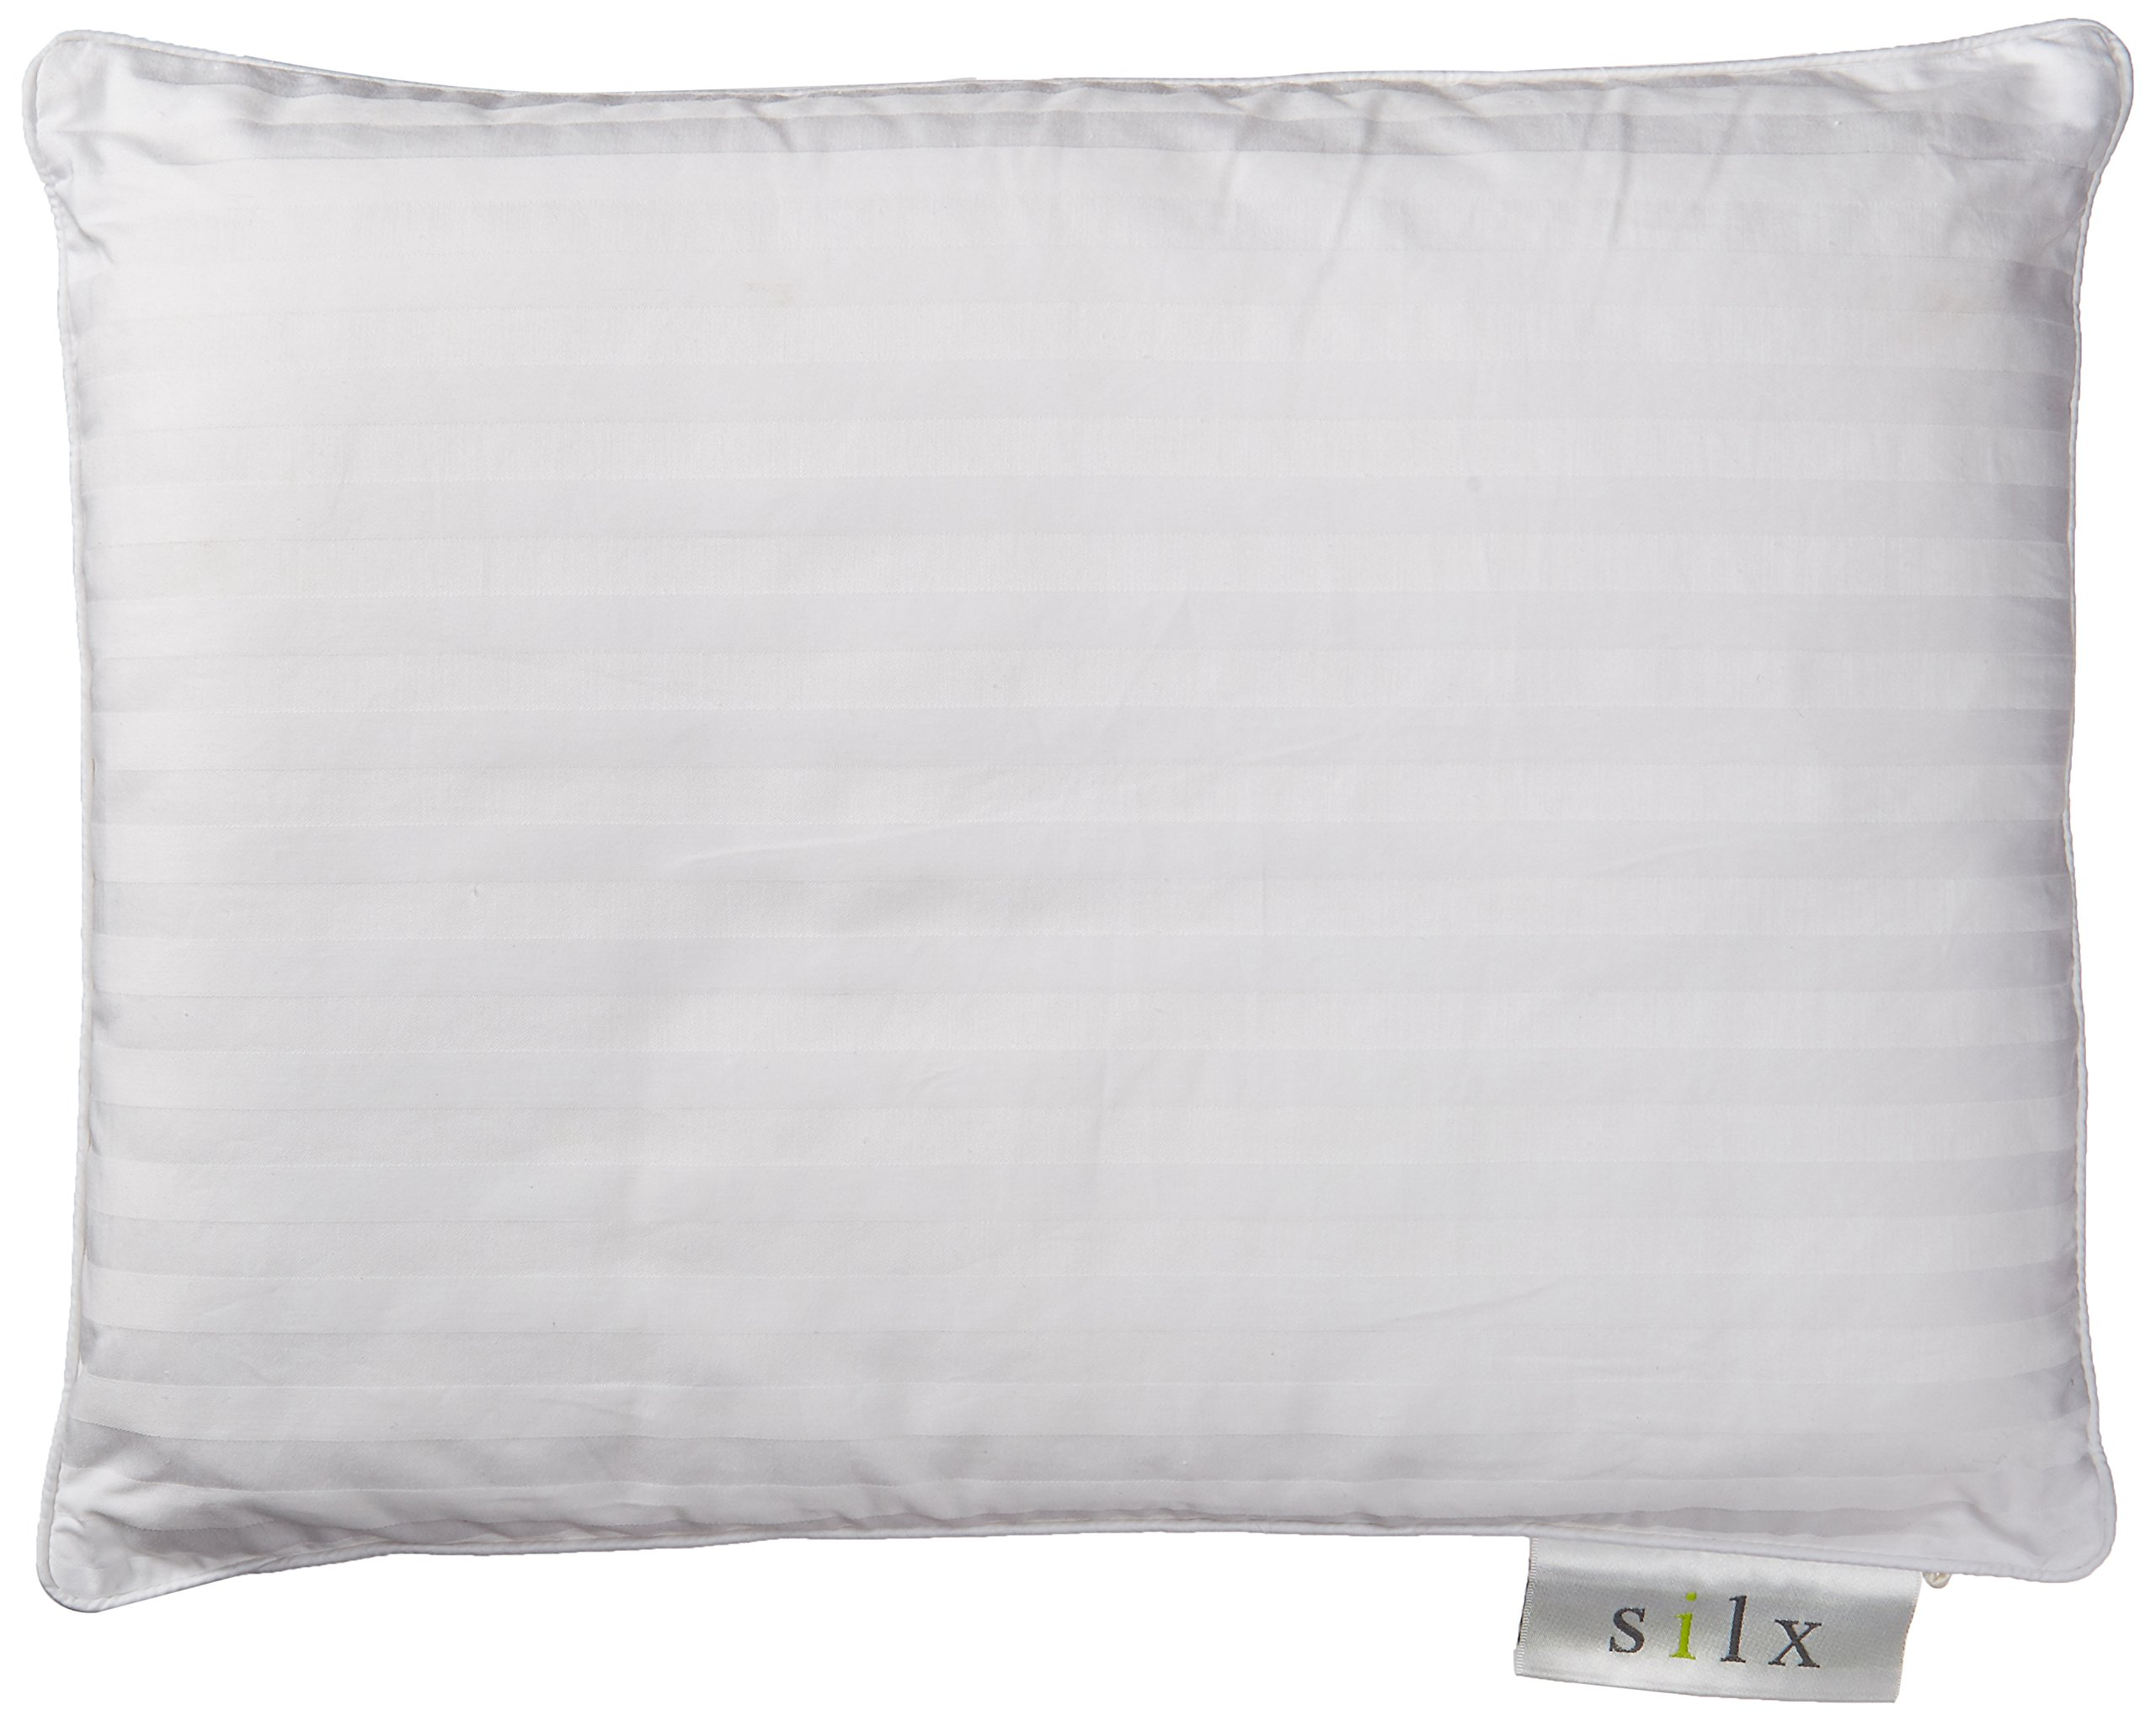 Silx Silk Filled Double Fill Pillow, Queen by SILX